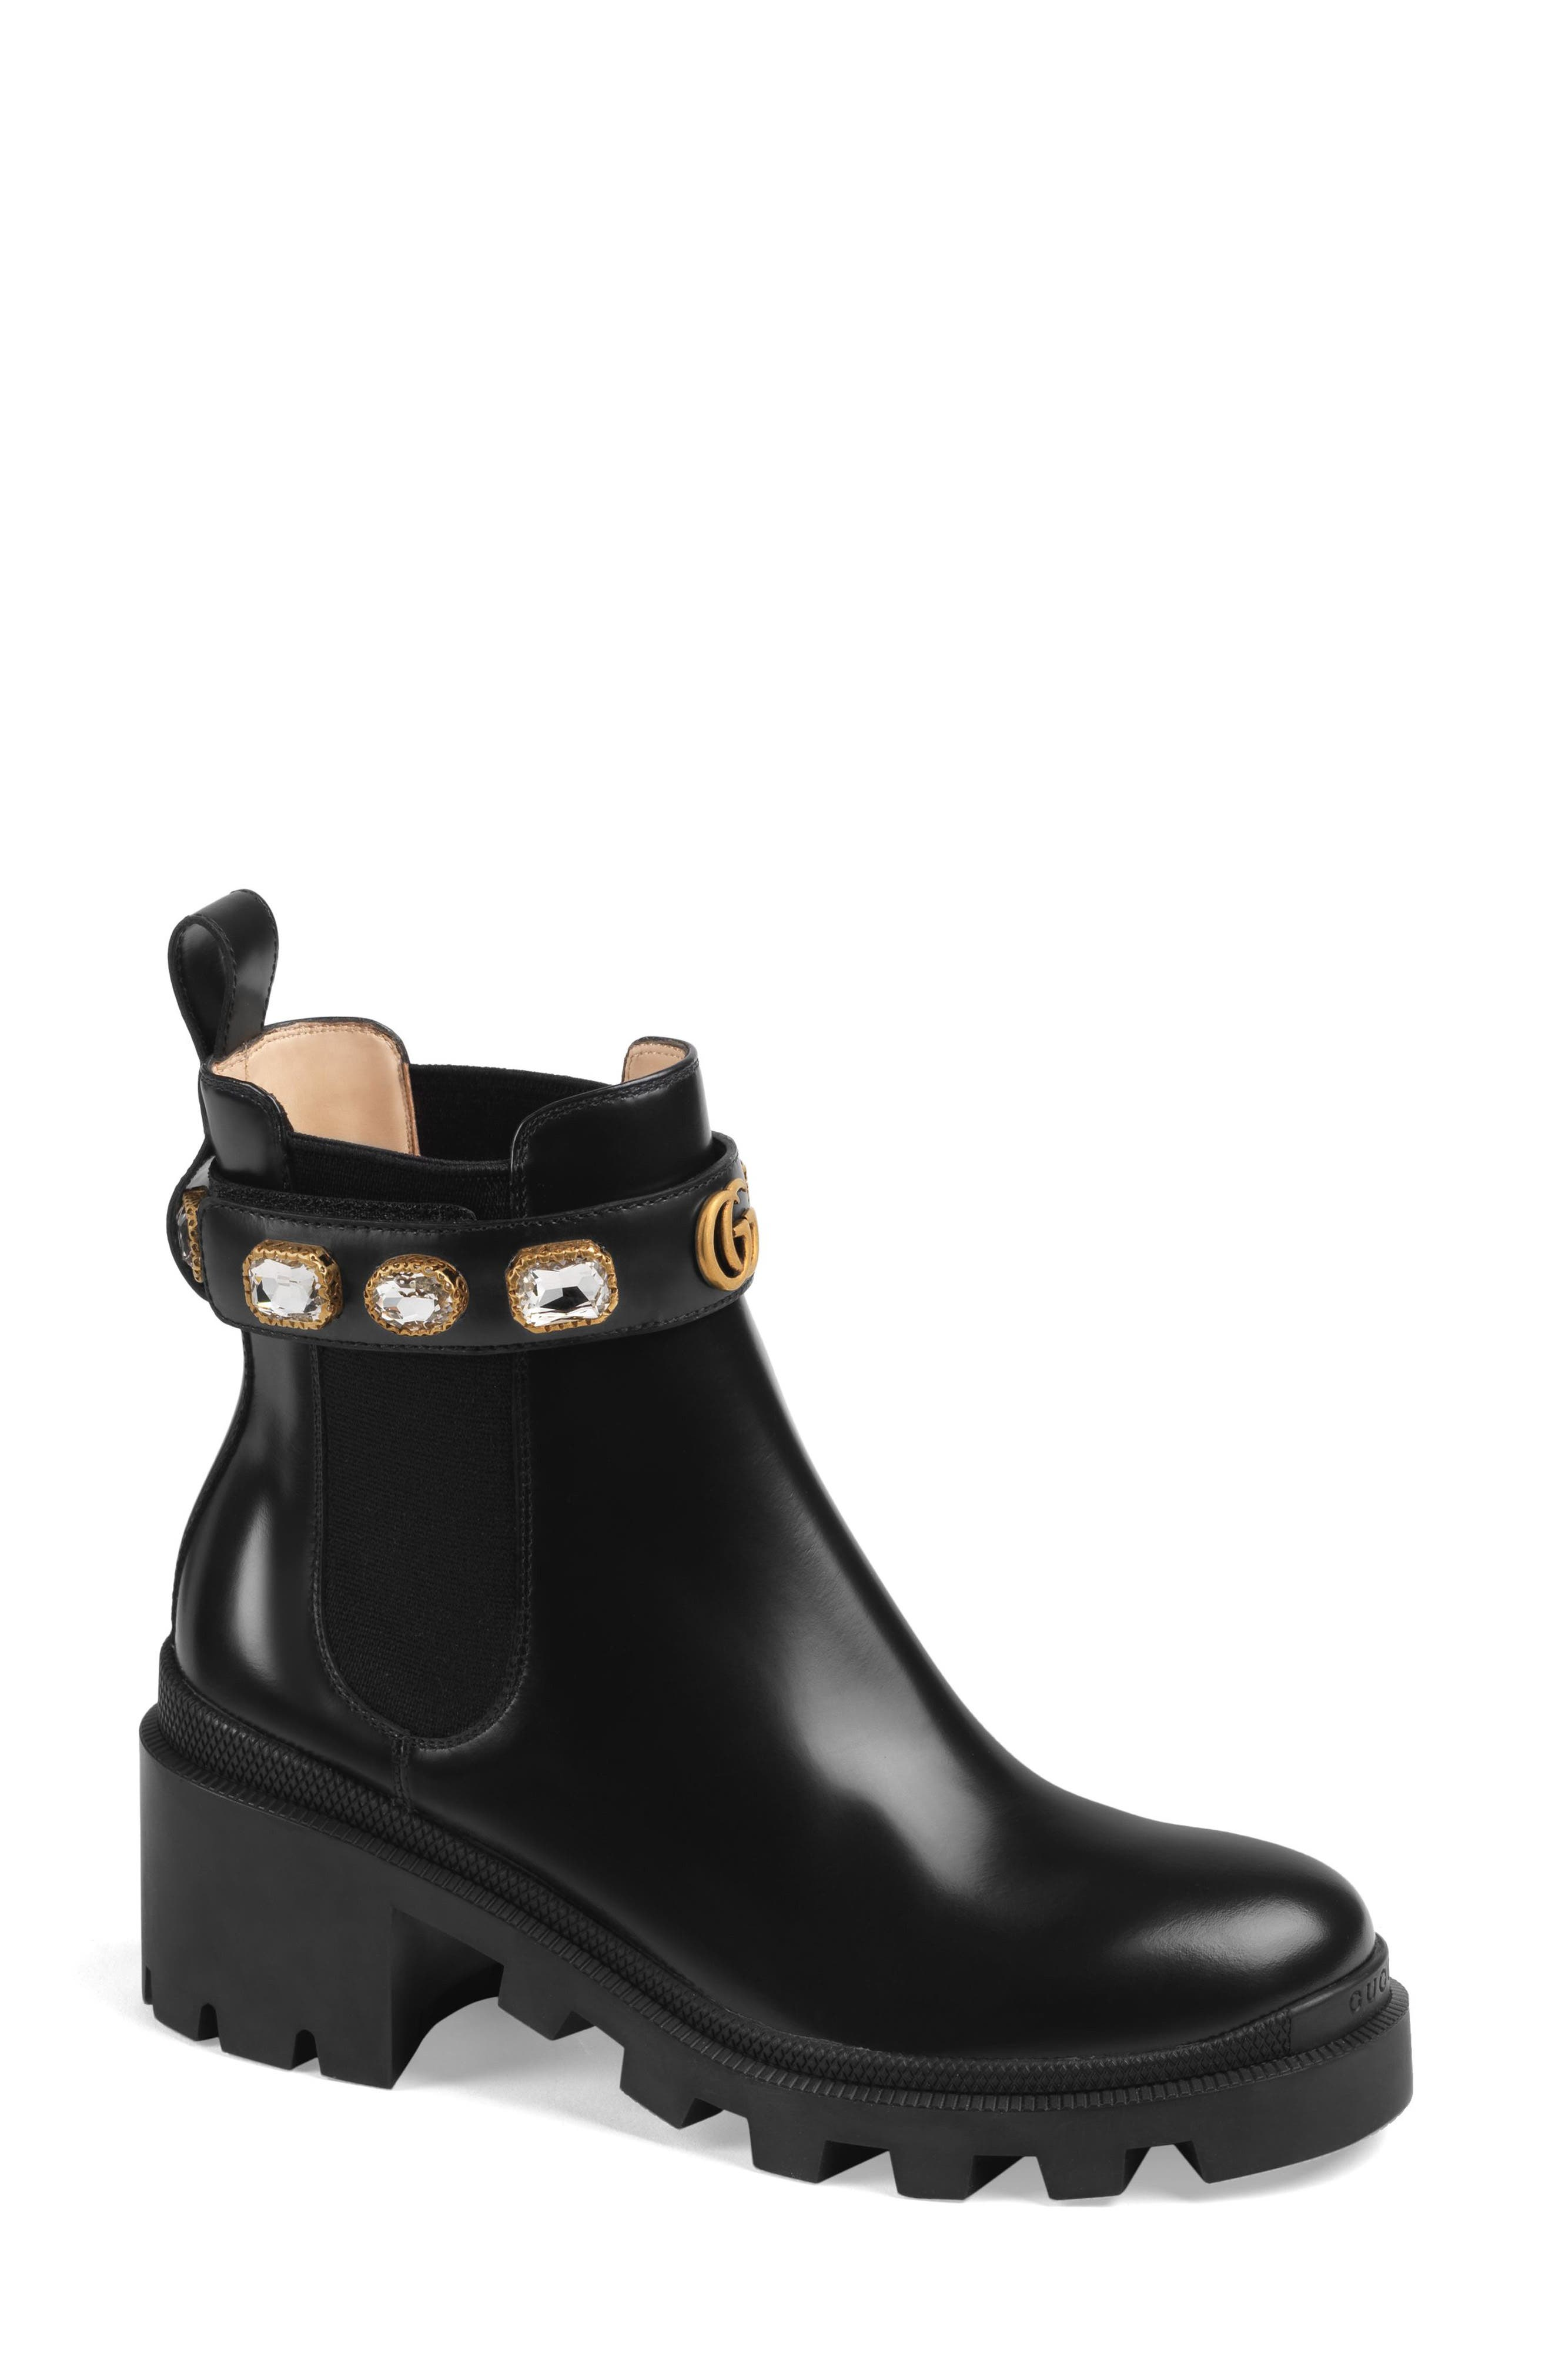 Gucci Women S Boots